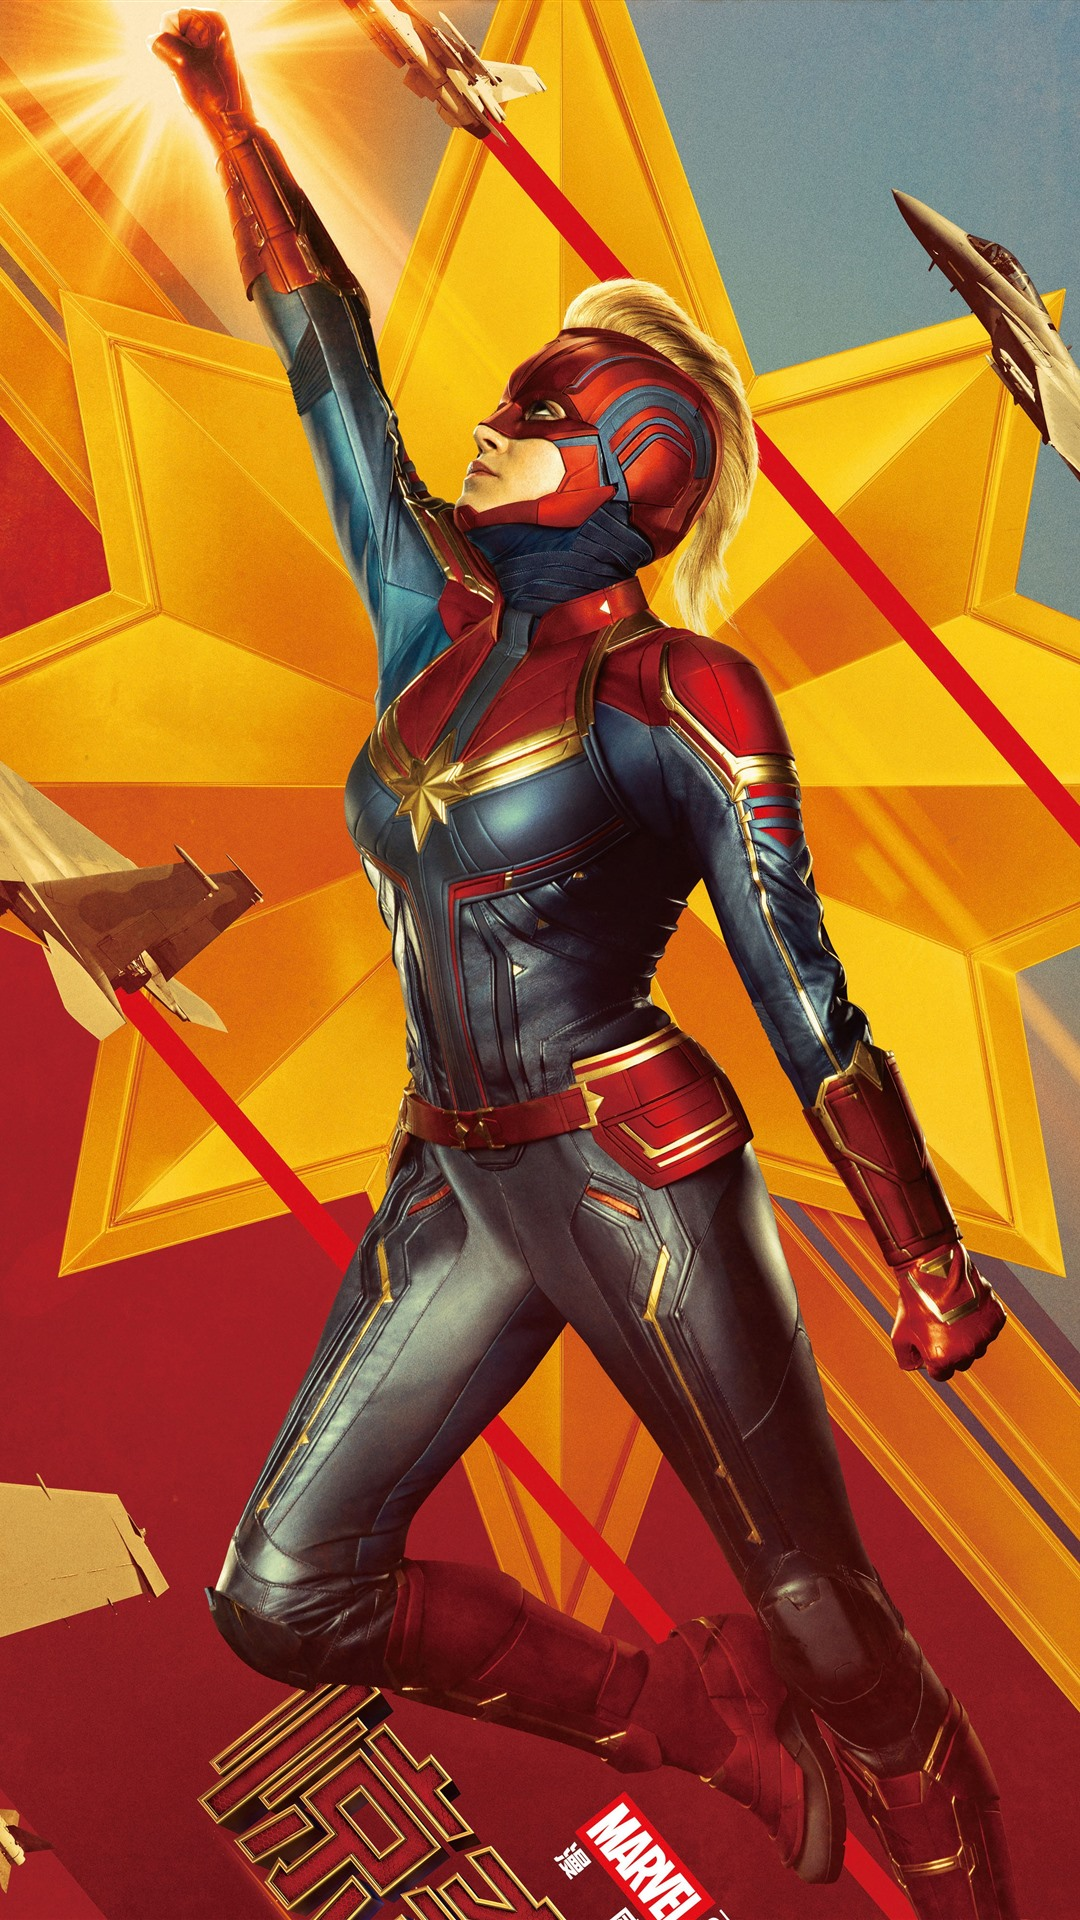 Captain Marvel 2019 Movie 1242x2688 Iphone 11 Pro Xs Max Wallpaper Background Picture Image